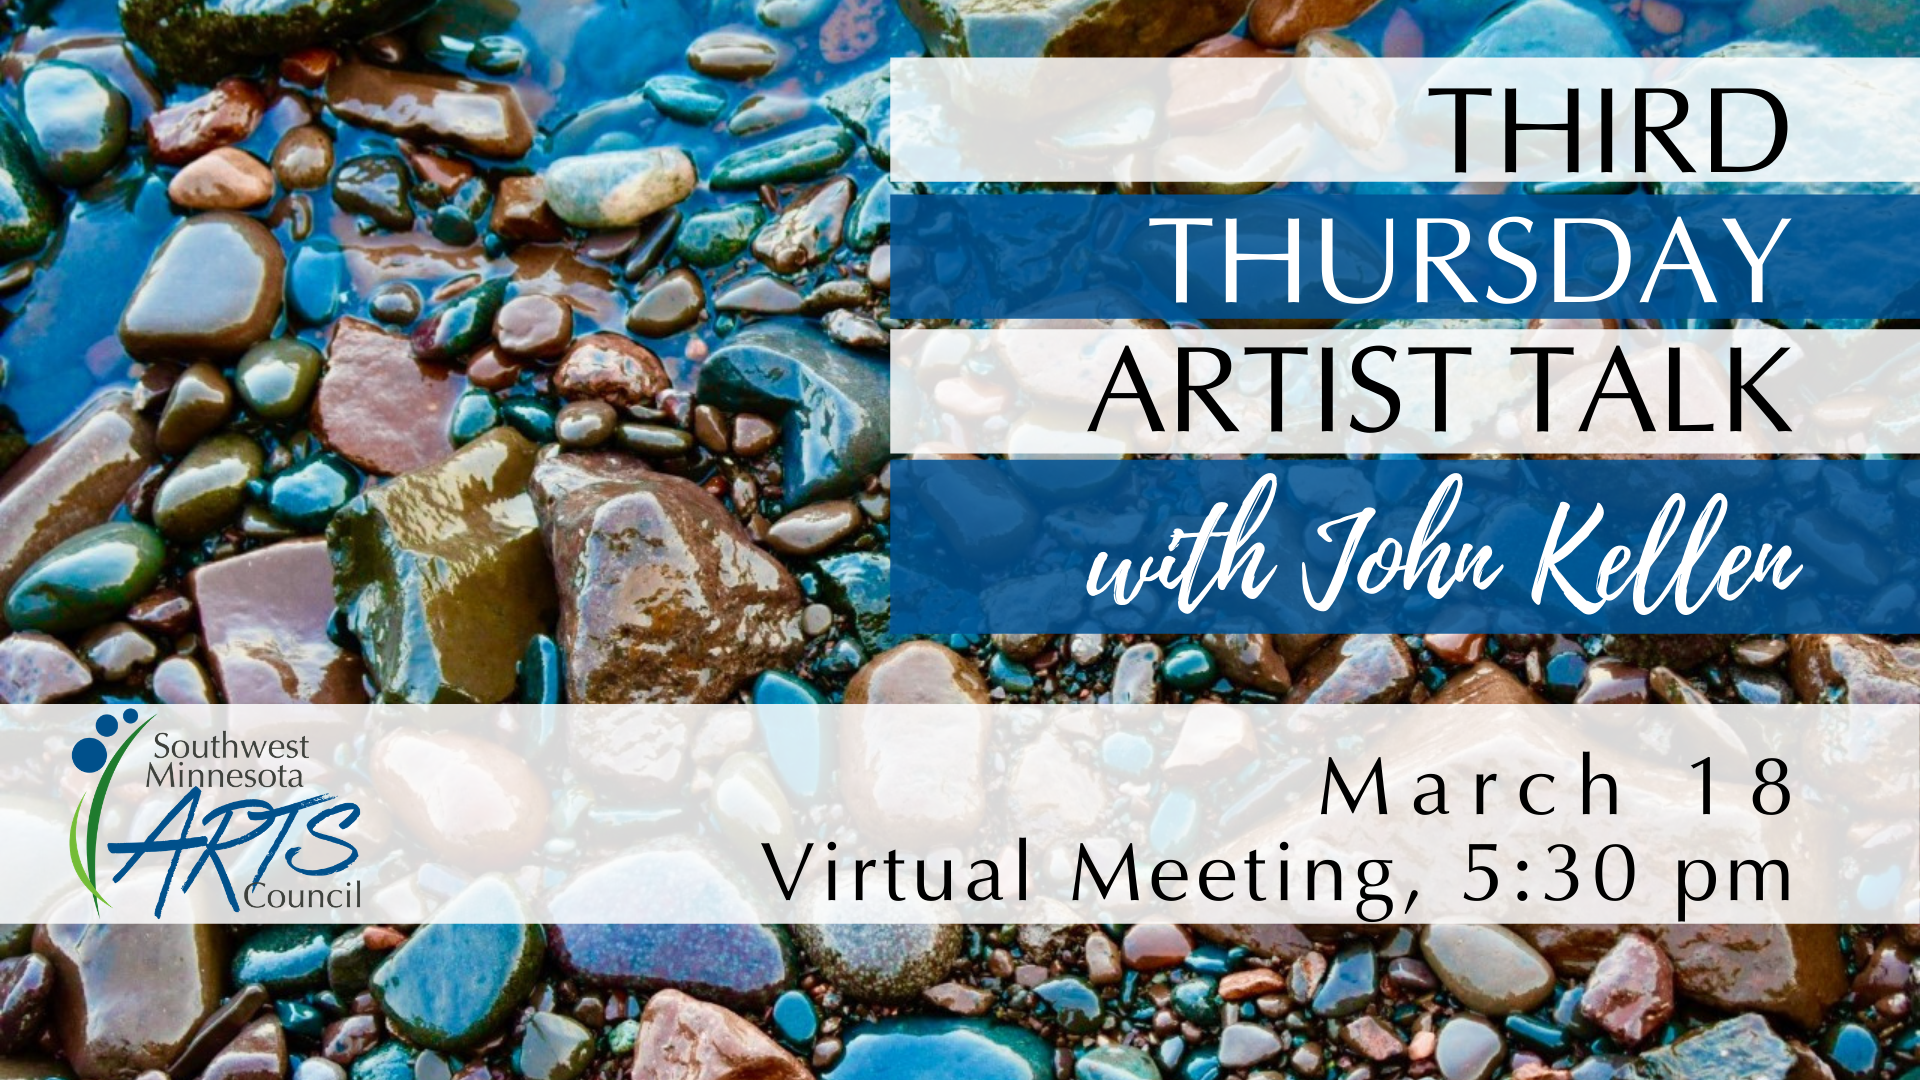 [Event Image: Background image is a photograph taken by John Kellen on colorful rocks with receded blue tinged water. Overlaid text reads: Third Thursday Artist Talk with John Kellen. March 18, Virtual Meeting, 5:30 pm.]